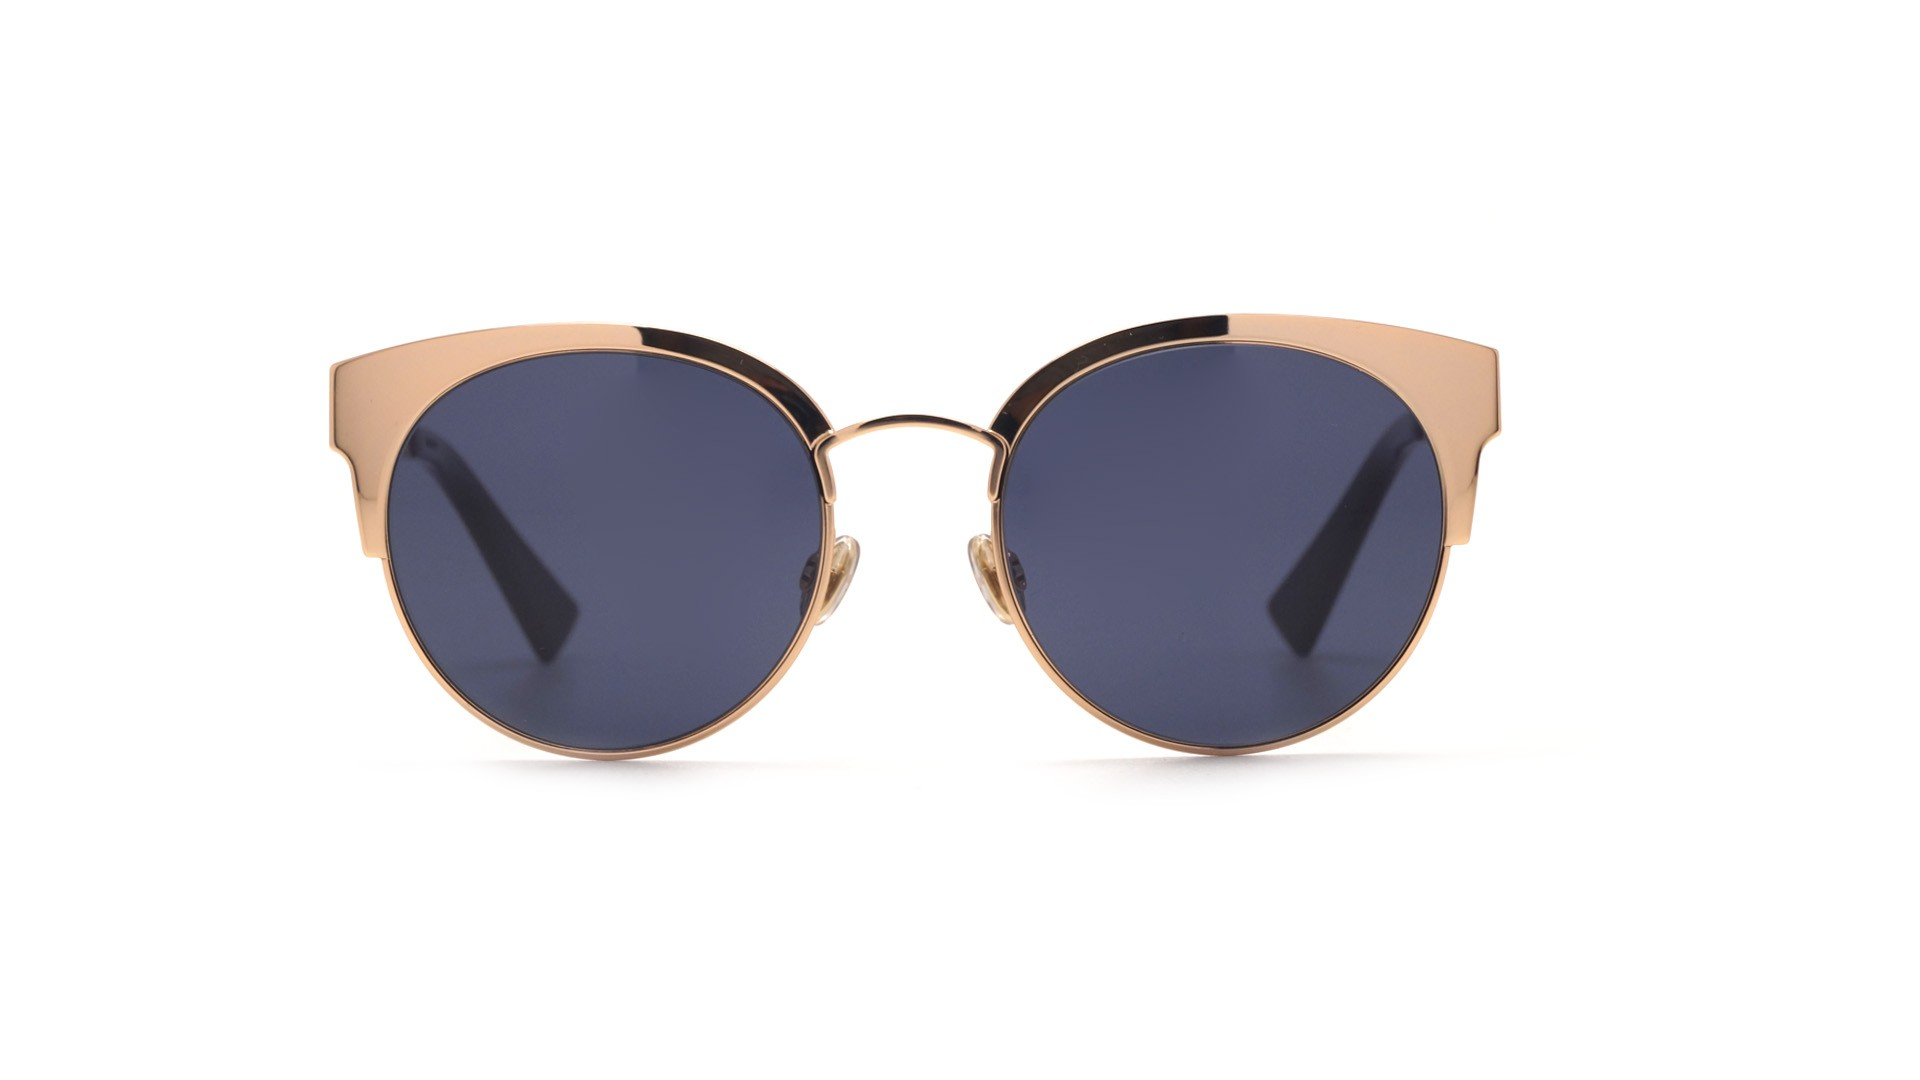 fc78a3e441 Sunglasses Dior Diorama Mini Gold DIORAMAMINI DDBKU 50-19 Medium